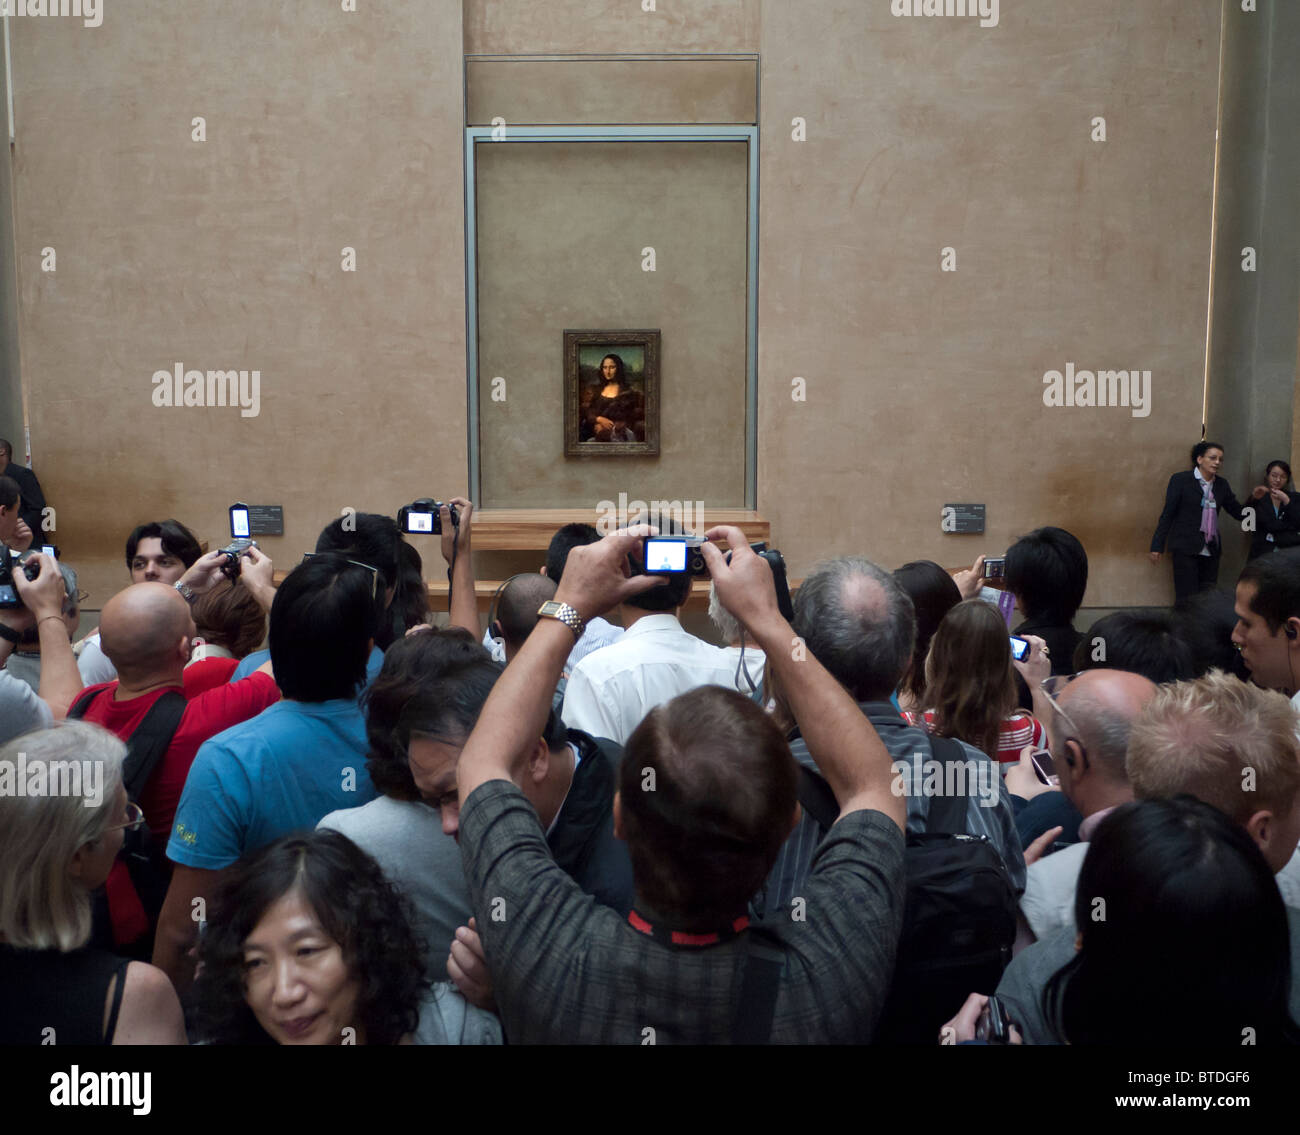 Many tourists crowding to see the famous Mona Lisa painting at the Louvre in Paris France - Stock Image